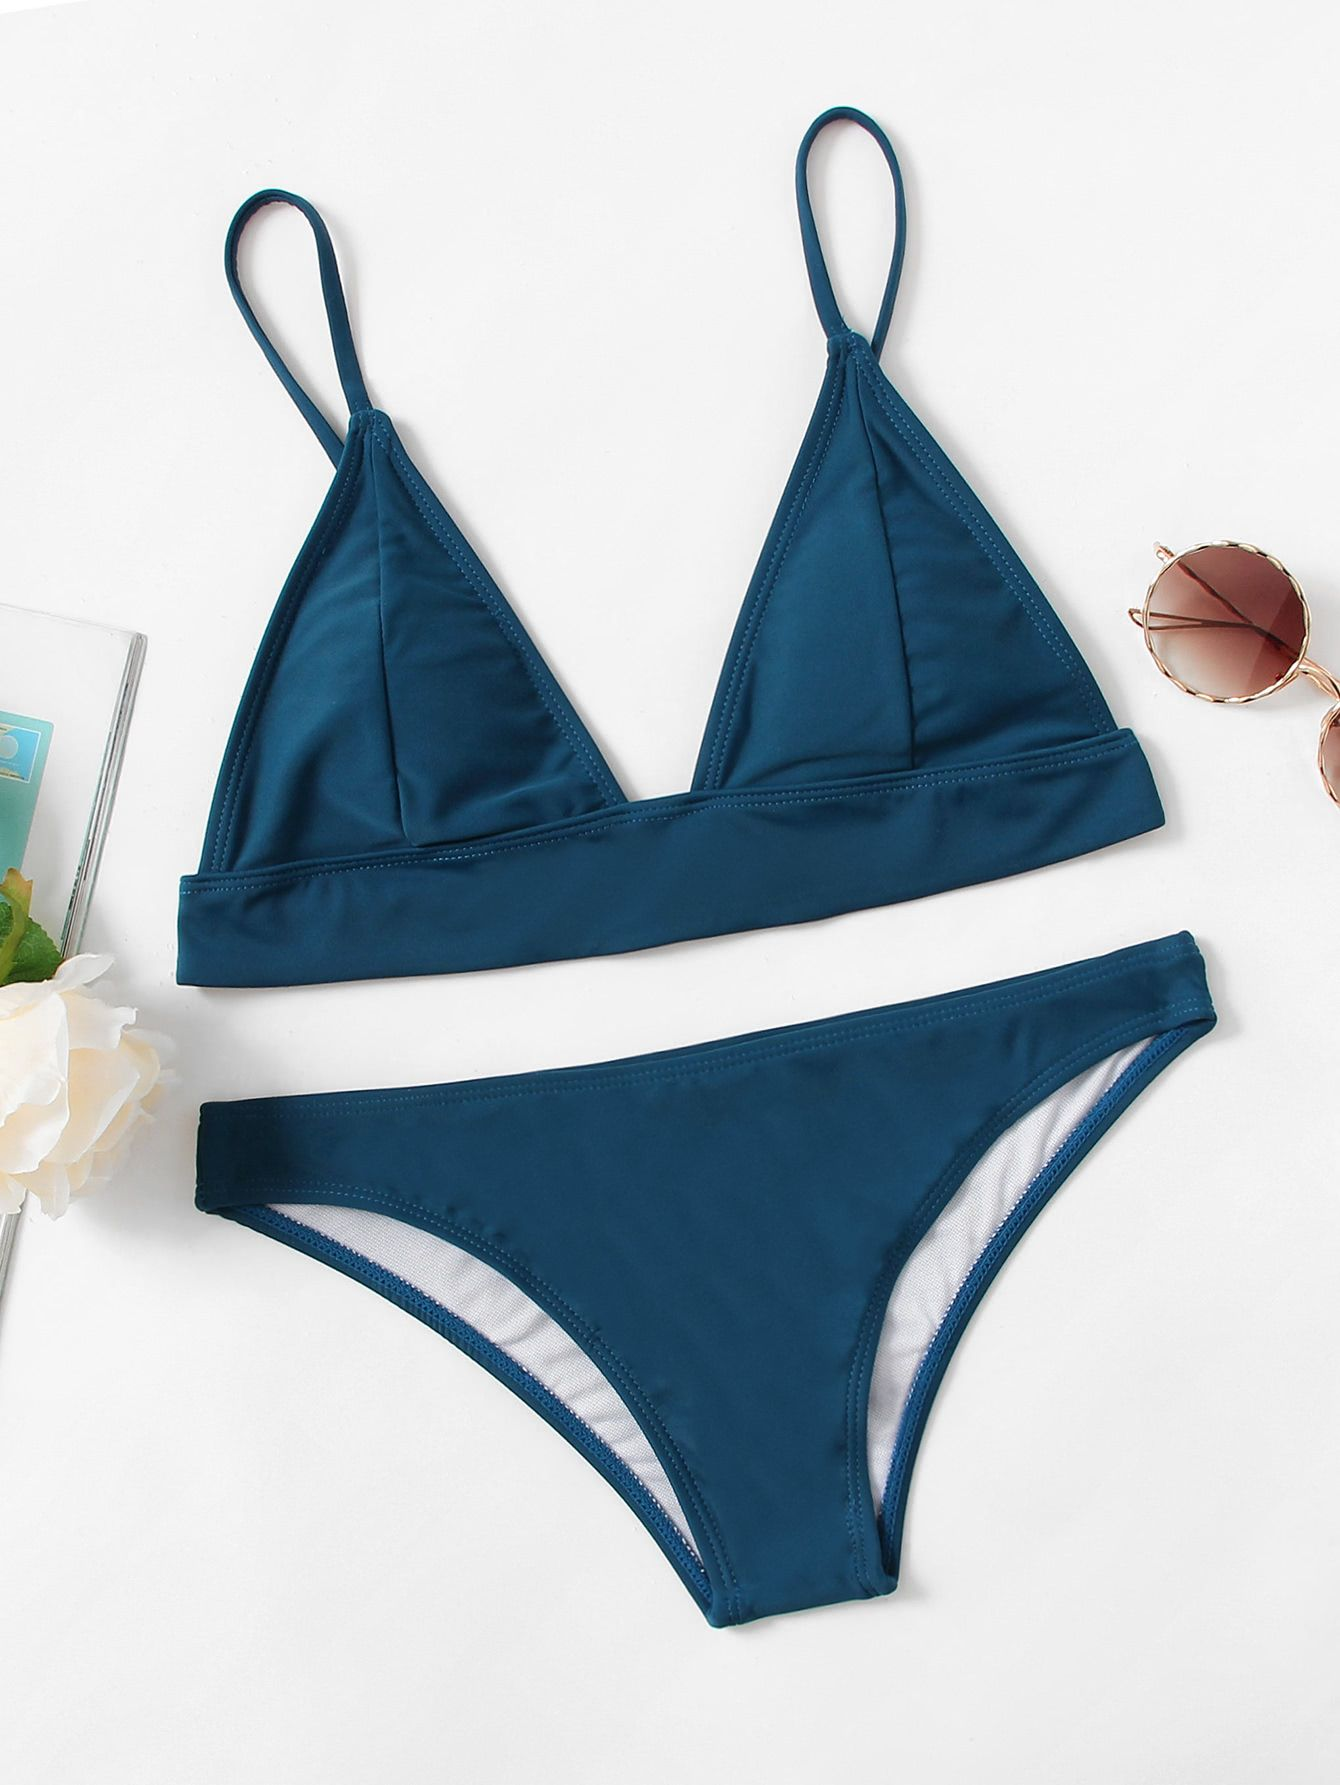 ce3d50657c Shop Adjustable Strap Triangle Bikini Set online. SheIn offers Adjustable  Strap Triangle Bikini Set & more to fit your fashionable needs.